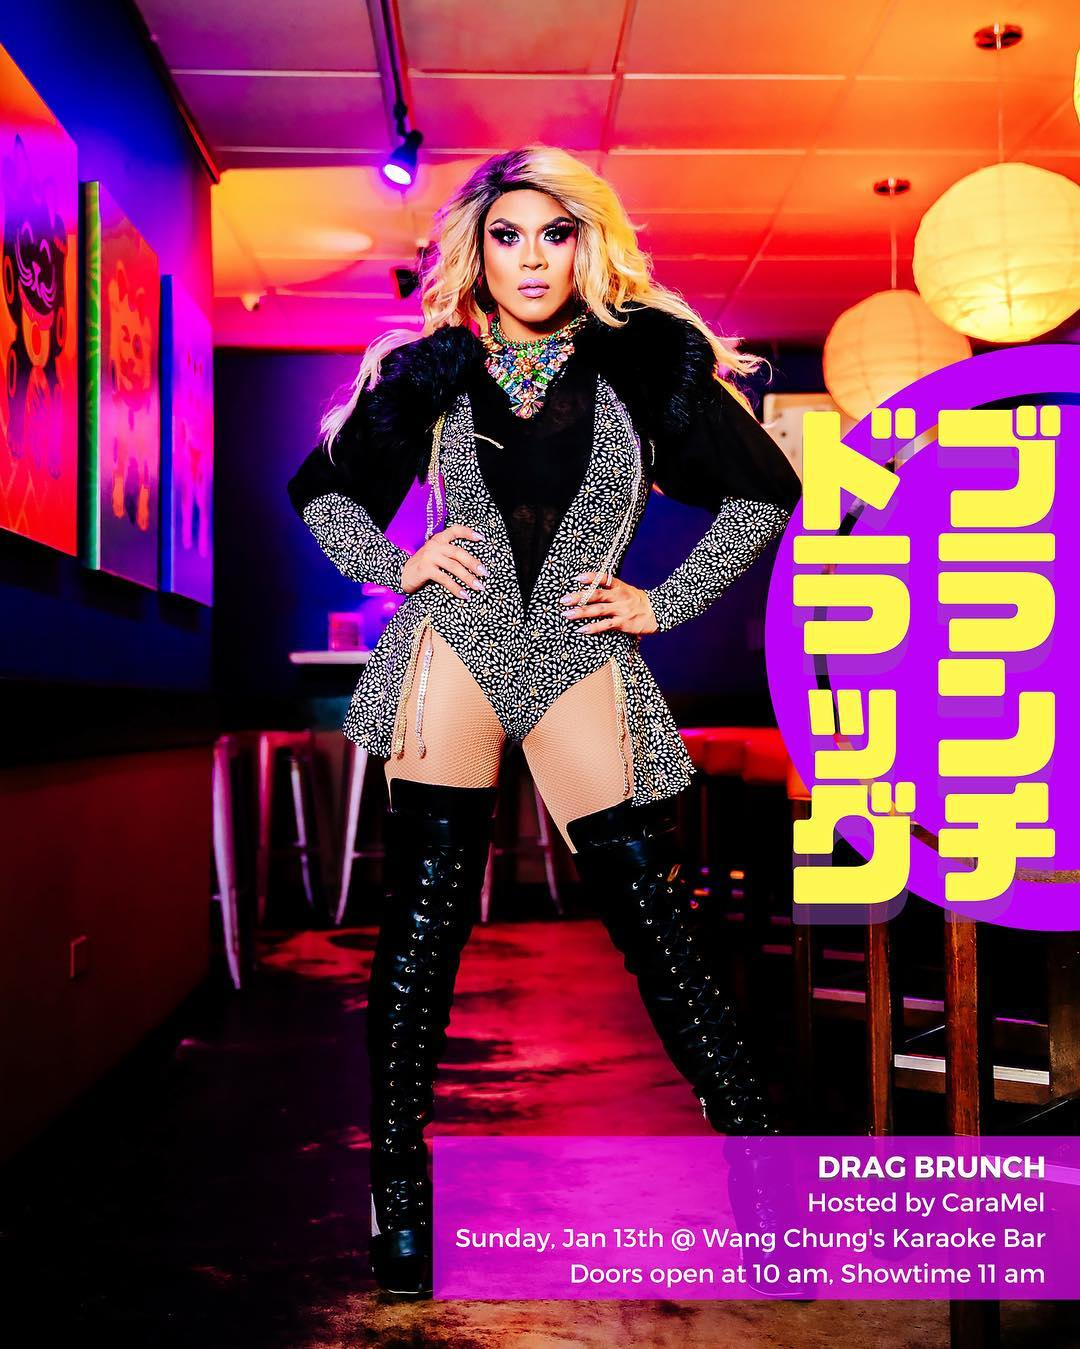 This Sunday is our first drag brunch of 2019! Hosted by the lovely @caramel.flava & featuring #dragqueens @northstar808 @keroboy77 & @mr.sister_official. Doors open at 10 am, showtime at 11 am, followed by our #catamaran at 1 pm. #wangchungs #dragbrunch #hawaii